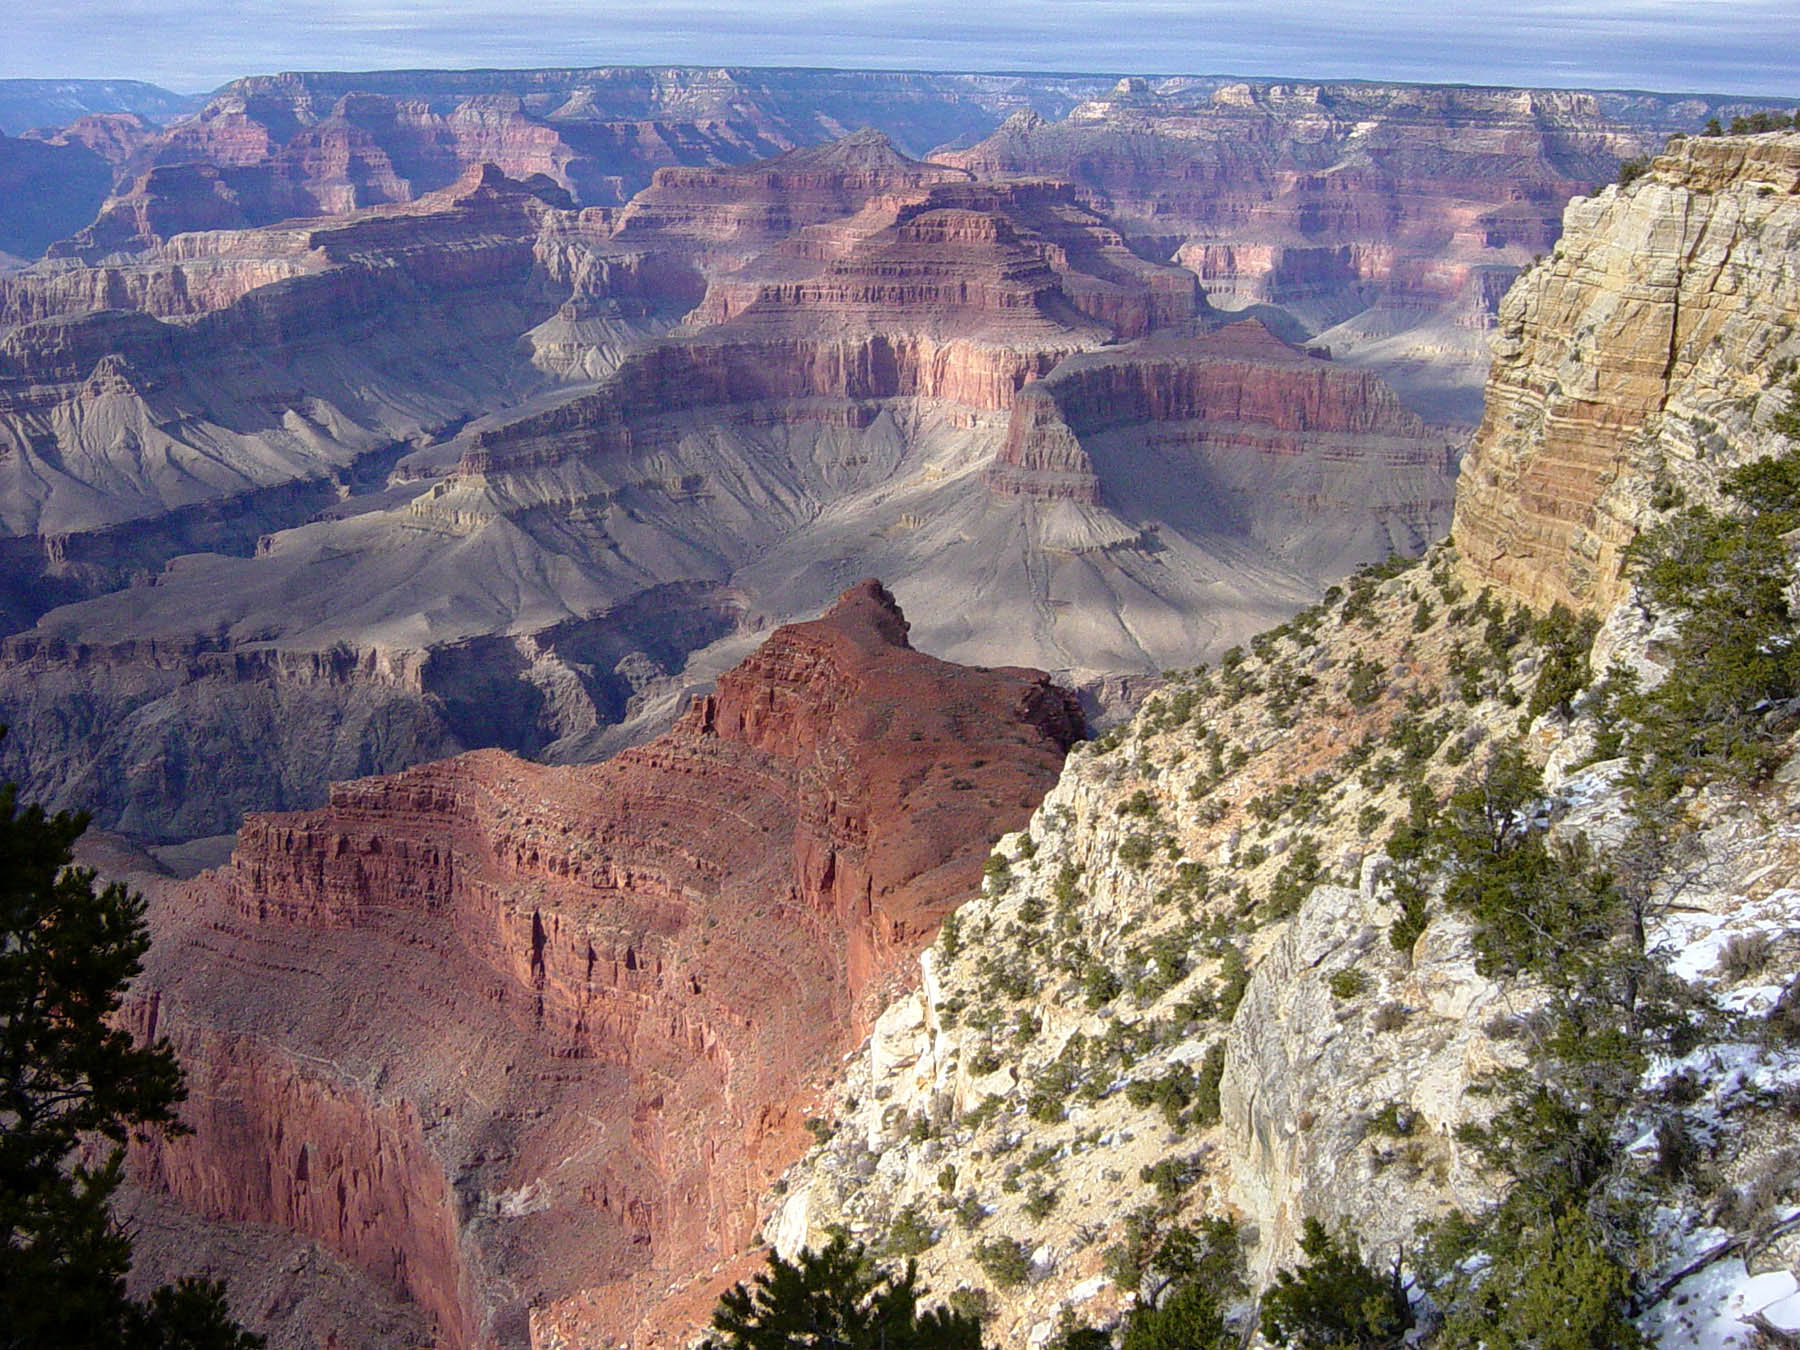 Grand Canyon, U.S.A, Peak overview